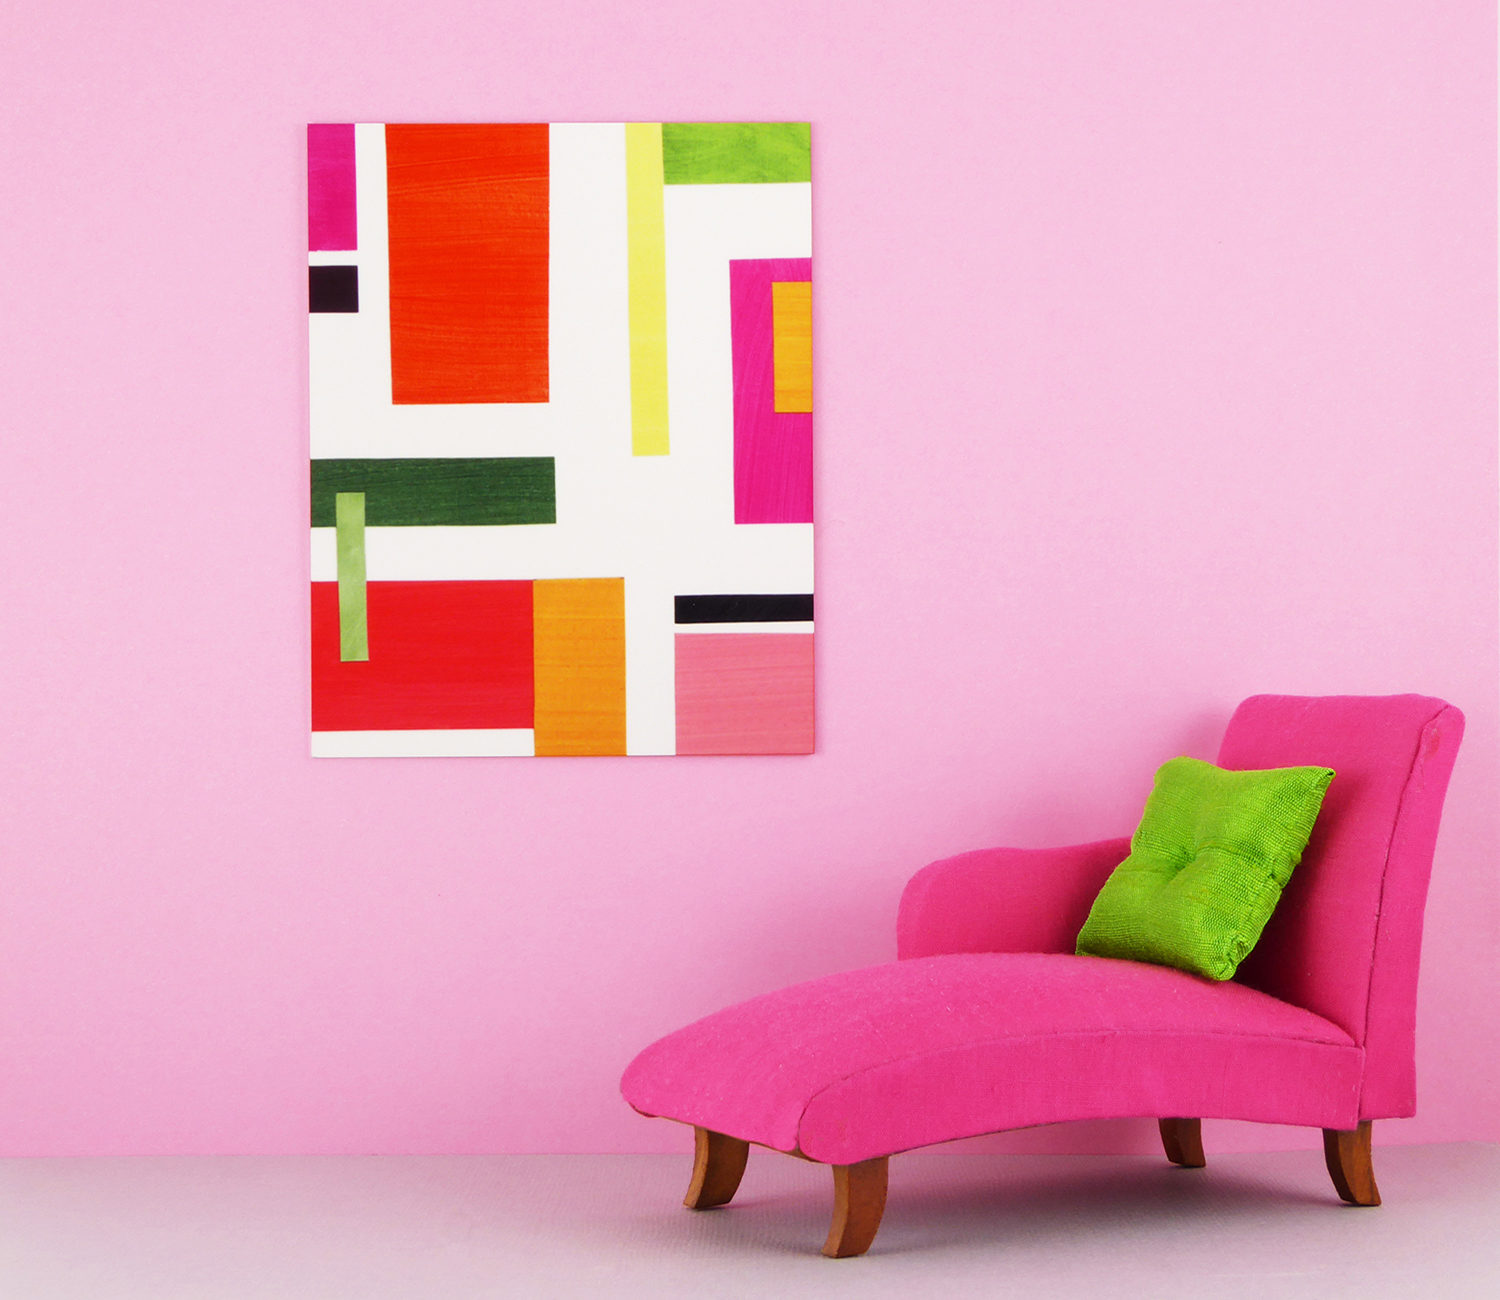 Minimalist Geometric Art, Bright Colors